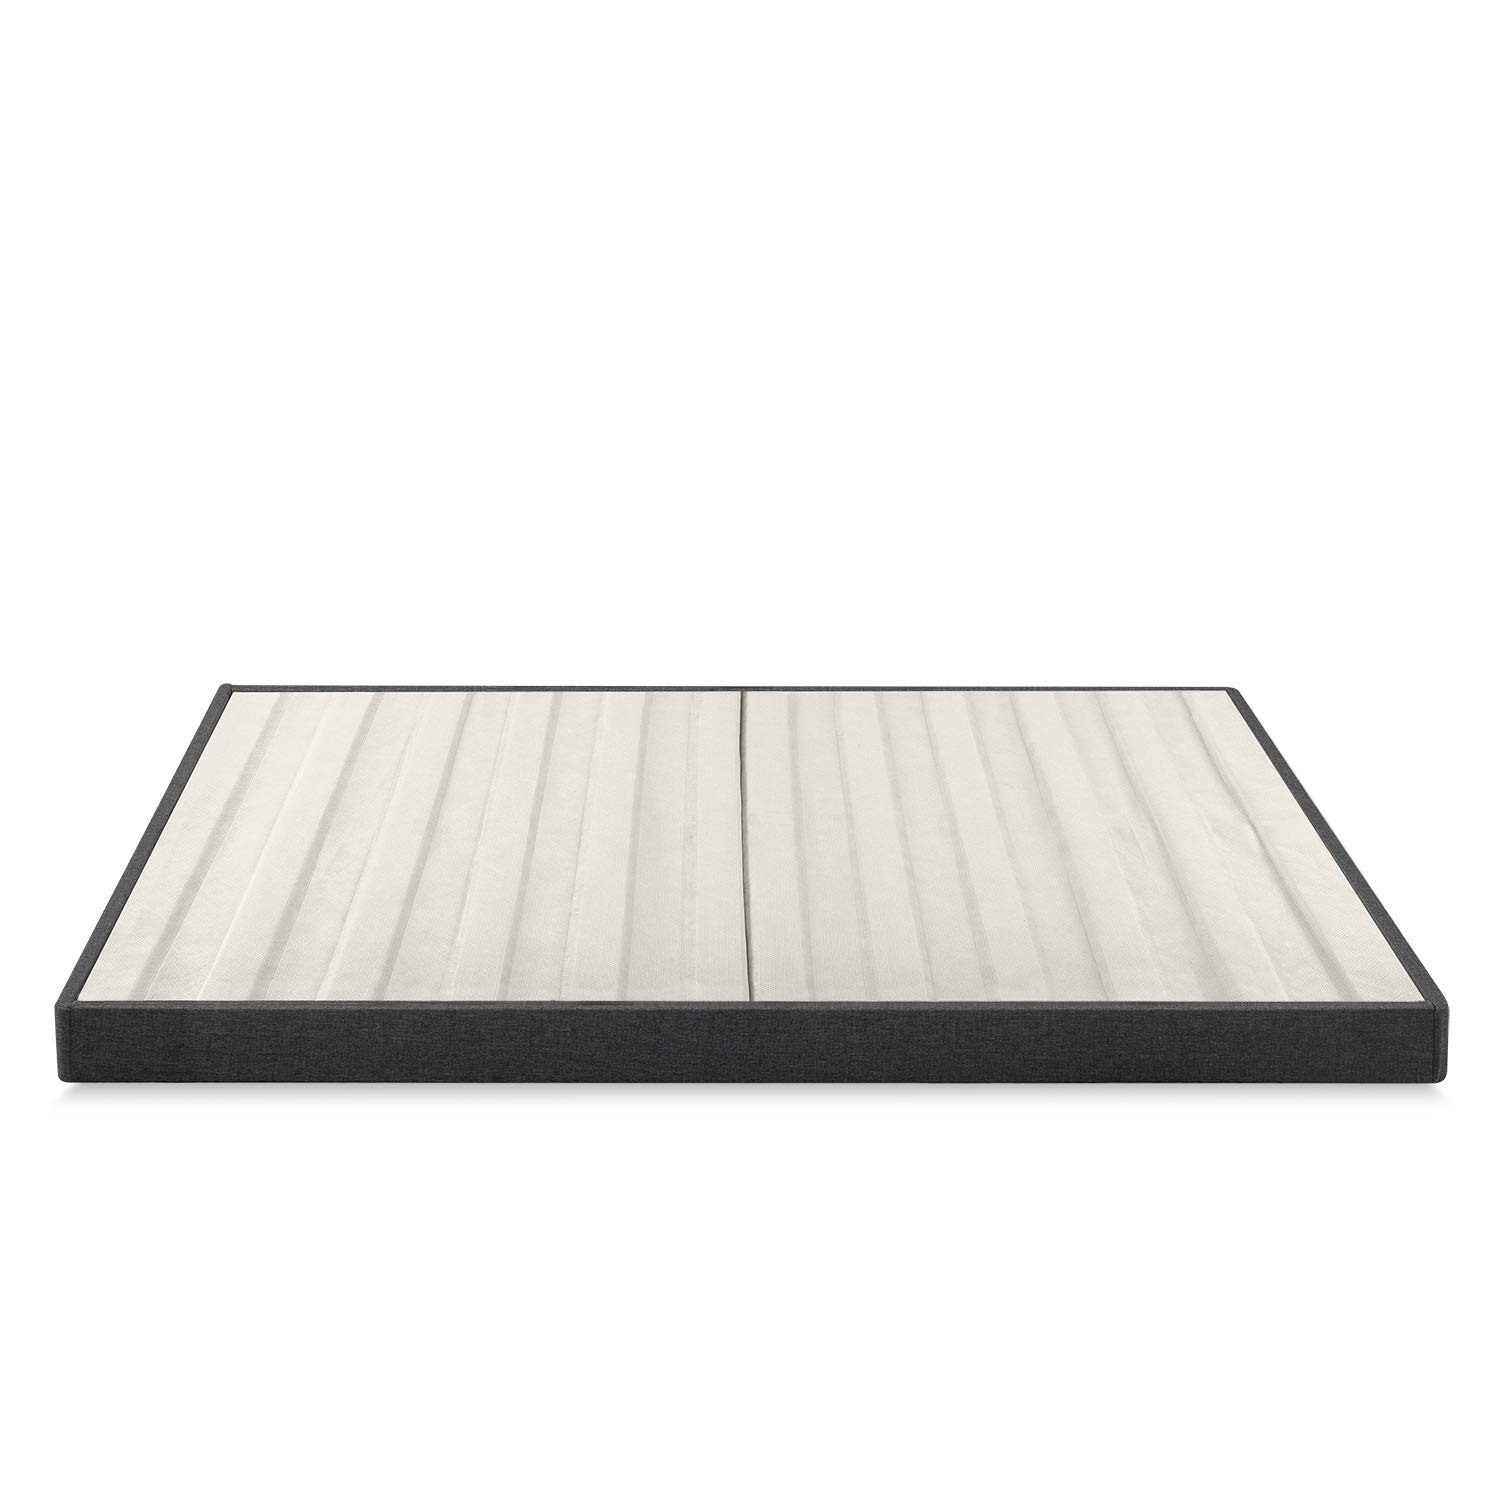 Zinus Daniel 4 Inch Essential Box Spring / Mattress Foundation / Easy Assembly Required, Queen (Renewed) by Zinus